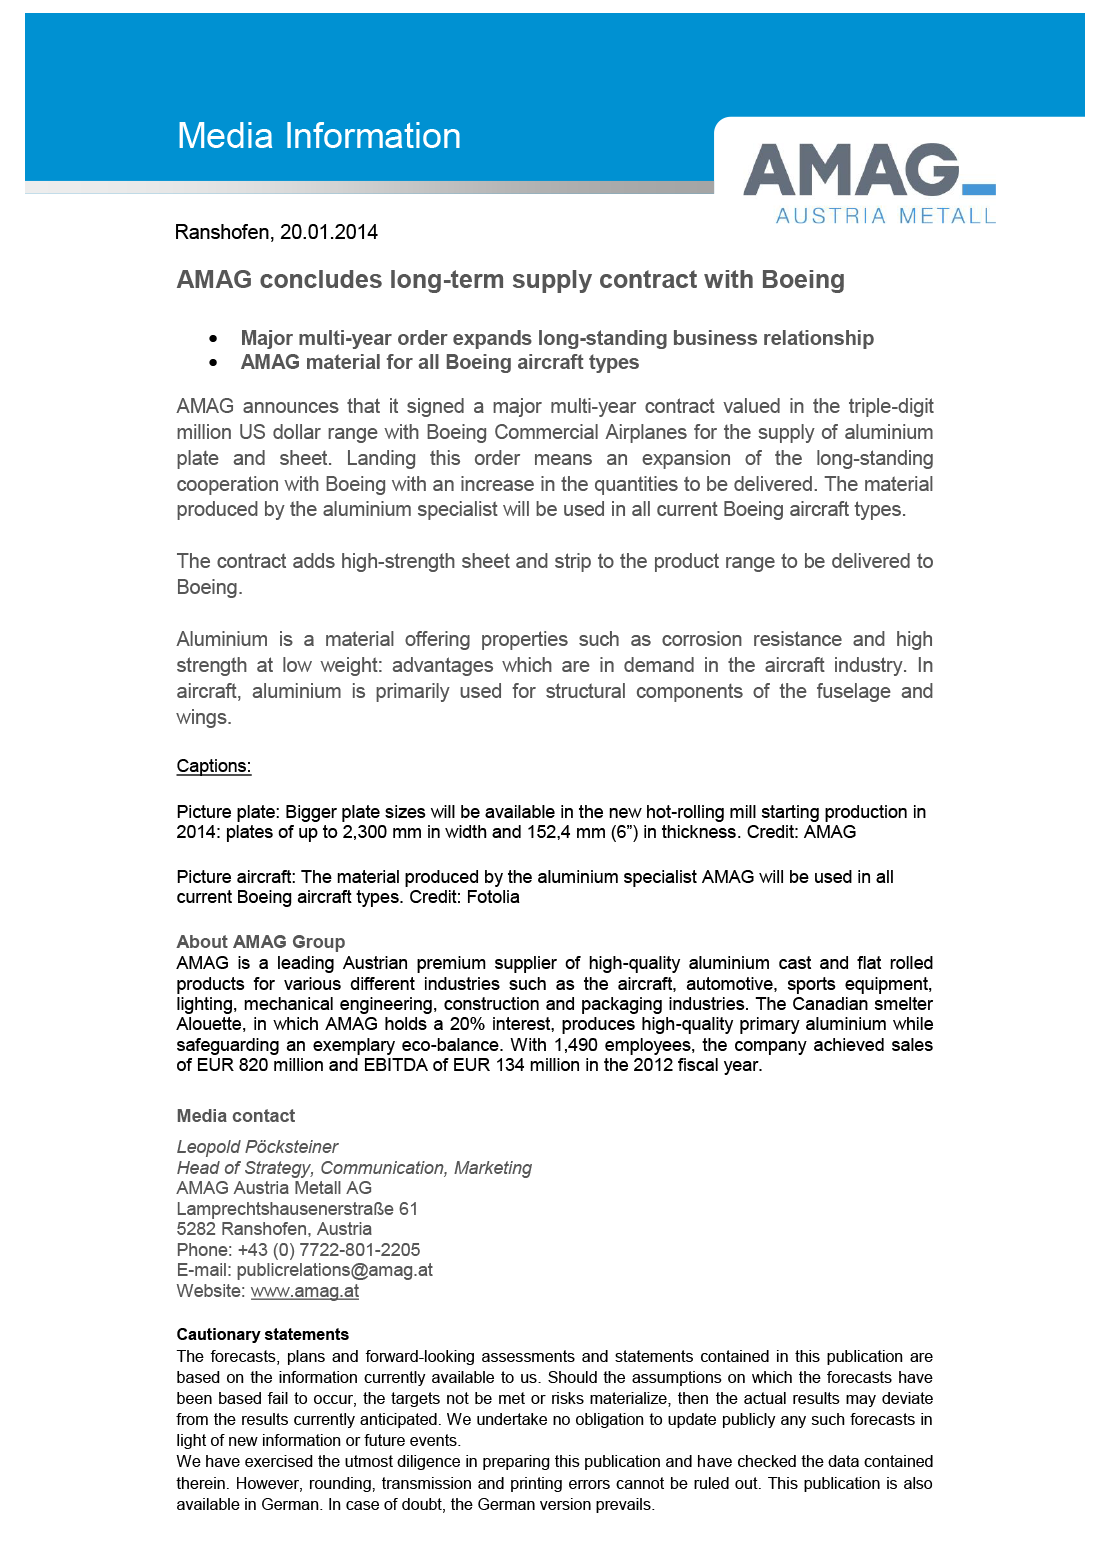 140120 1050 AMAG announces long-term supply contract with Boeing.png